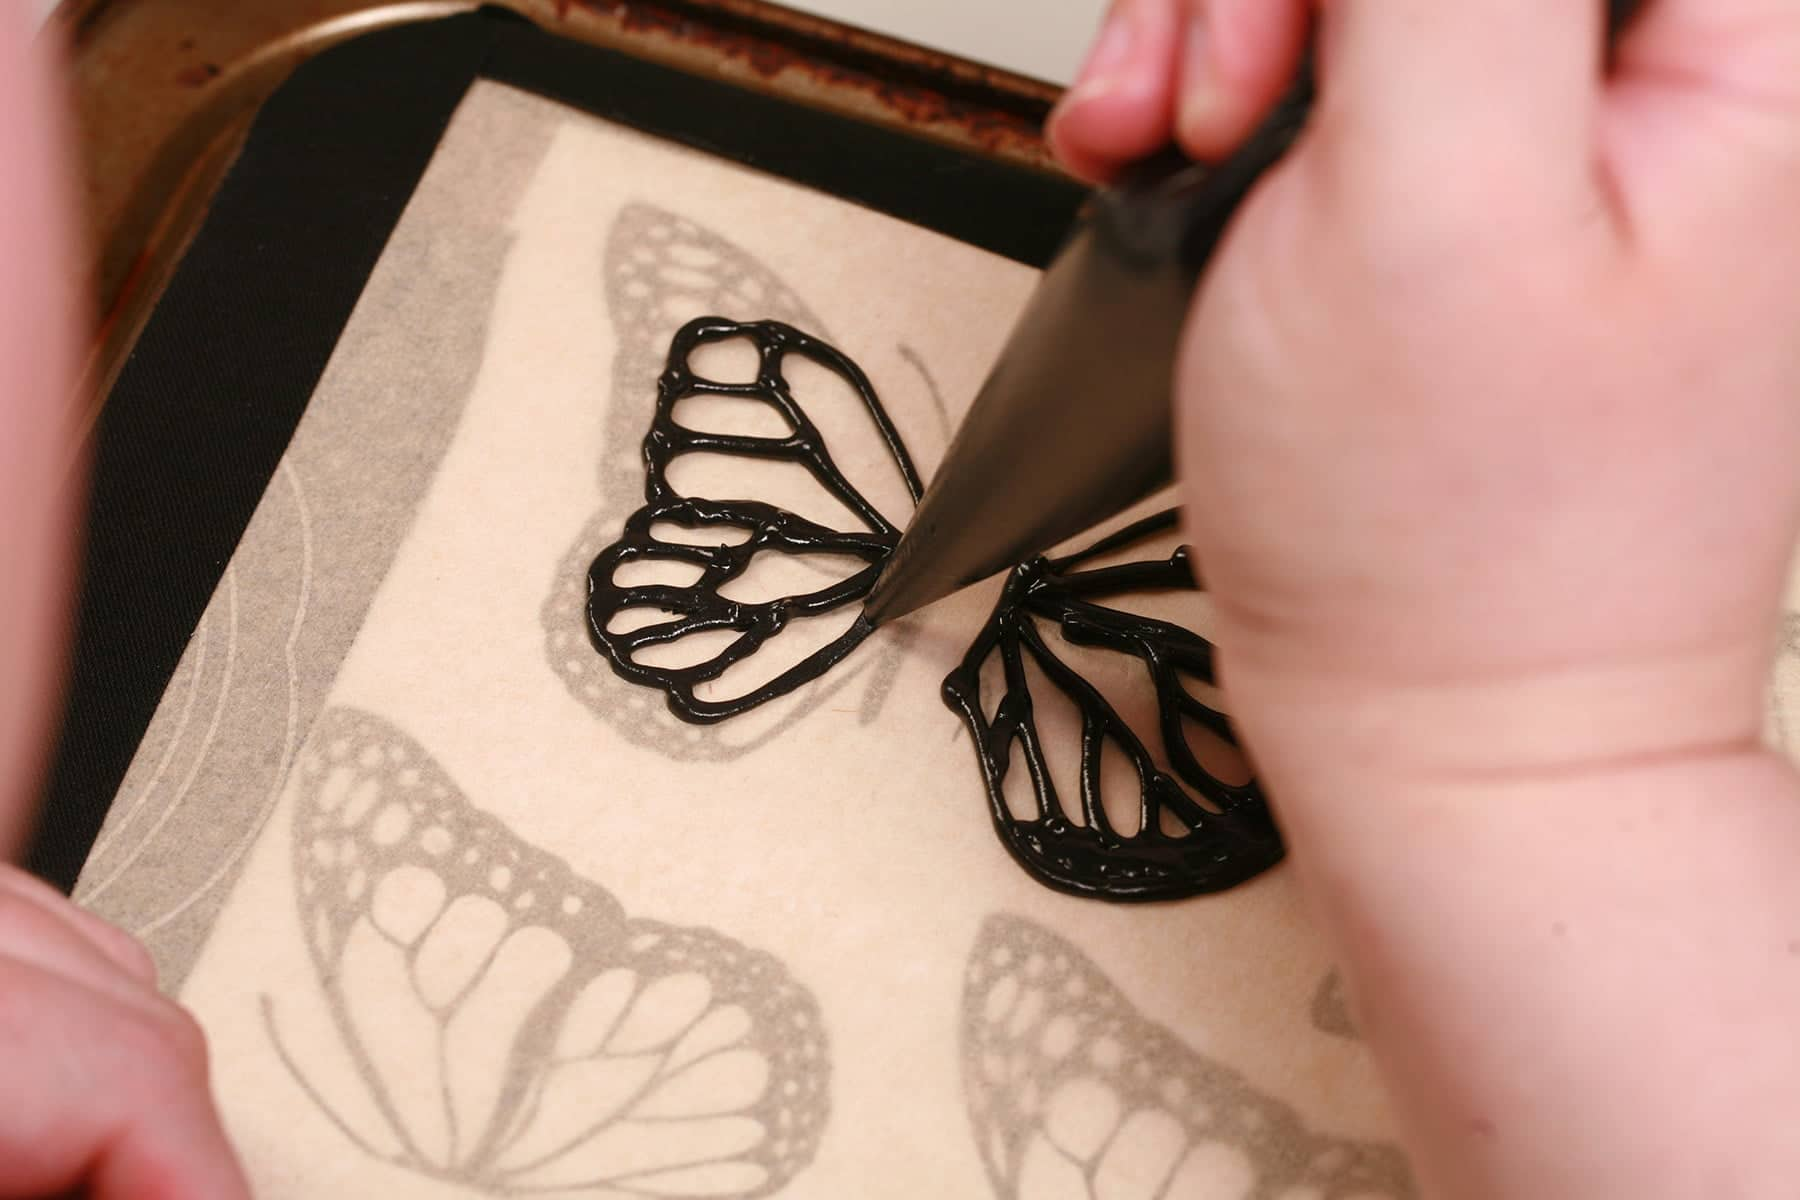 A hand uses a pastry bag full of black royal icing to pipe the outlines of butterfly wings on the back of a baking sheet.